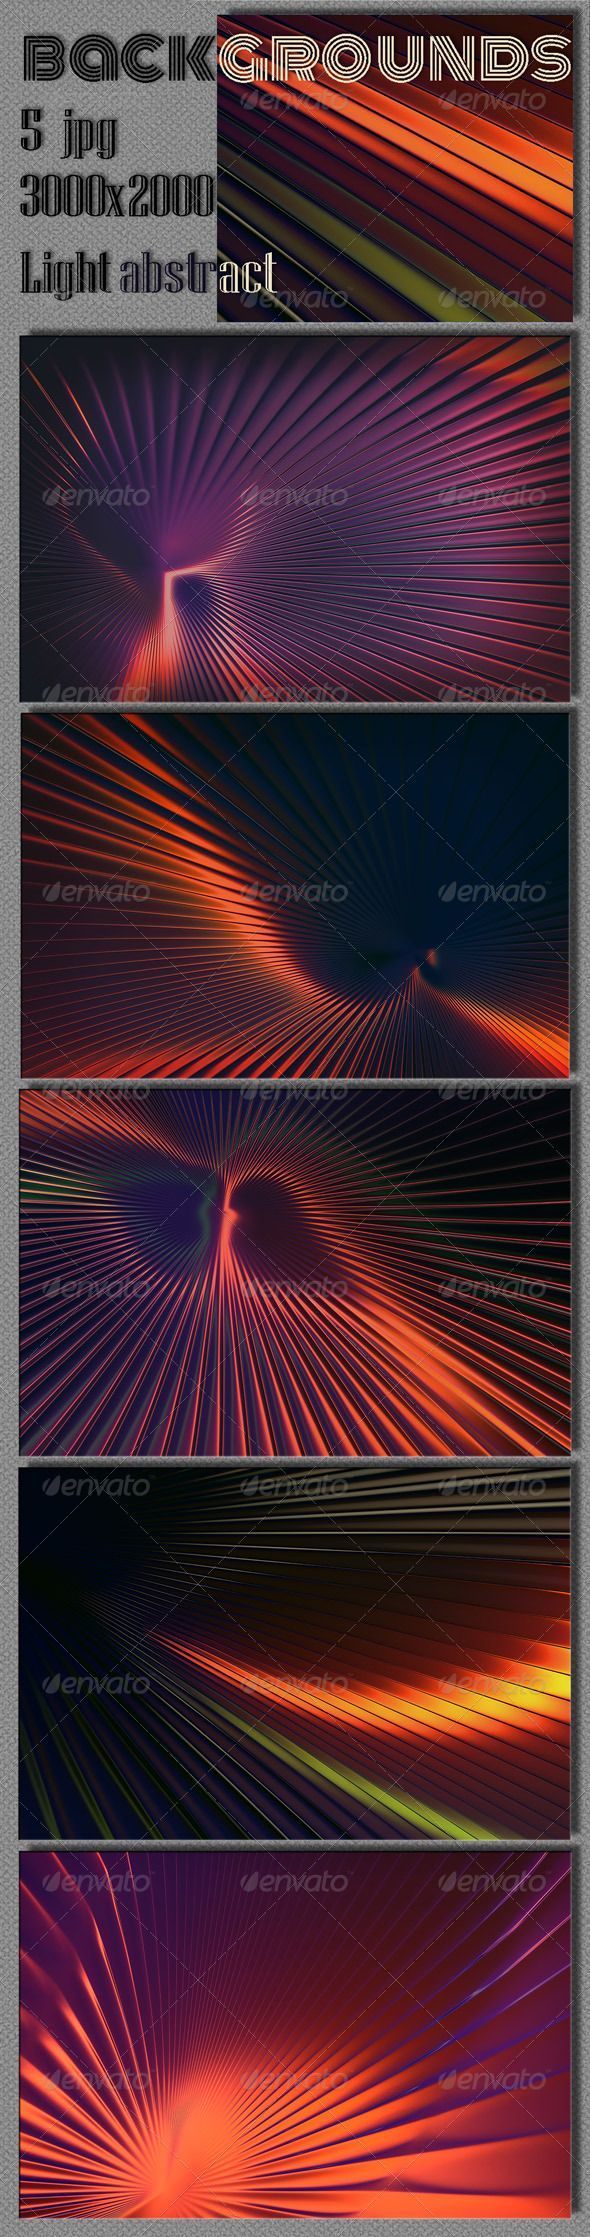 Light Abstract Backgrounds 5 Hi-res Jpeg 3000×2000 300 dpi.